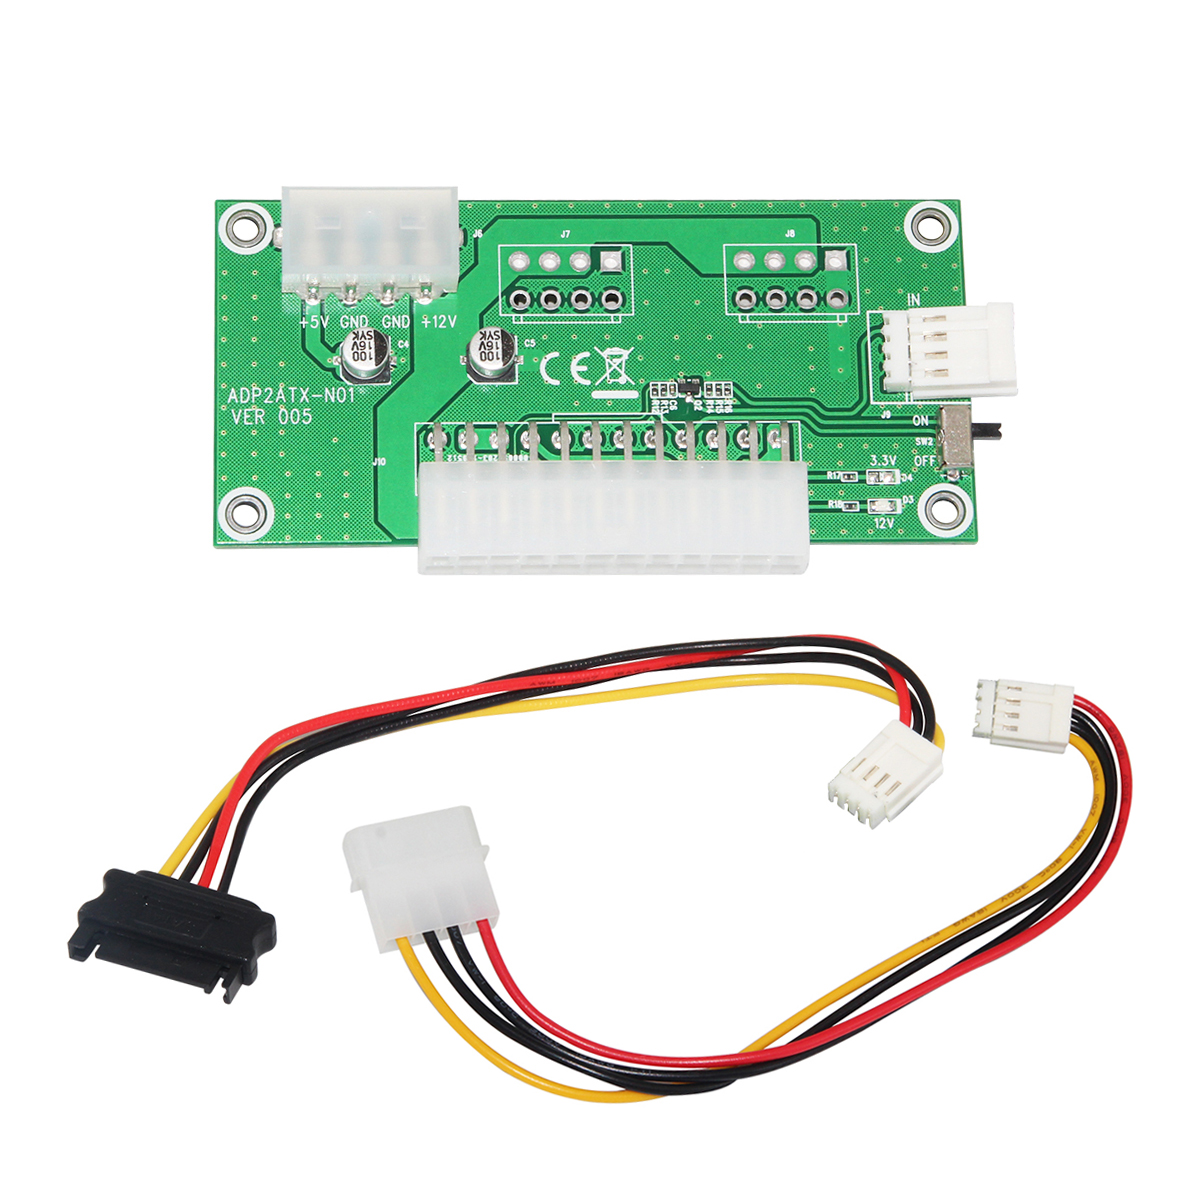 24 20 Pin Atx Dc Power Supply Breakout Board Module In Connectors Pc Computer Schematic Diagram 24pin Desktop Dual Psu Sync Starter Adapter